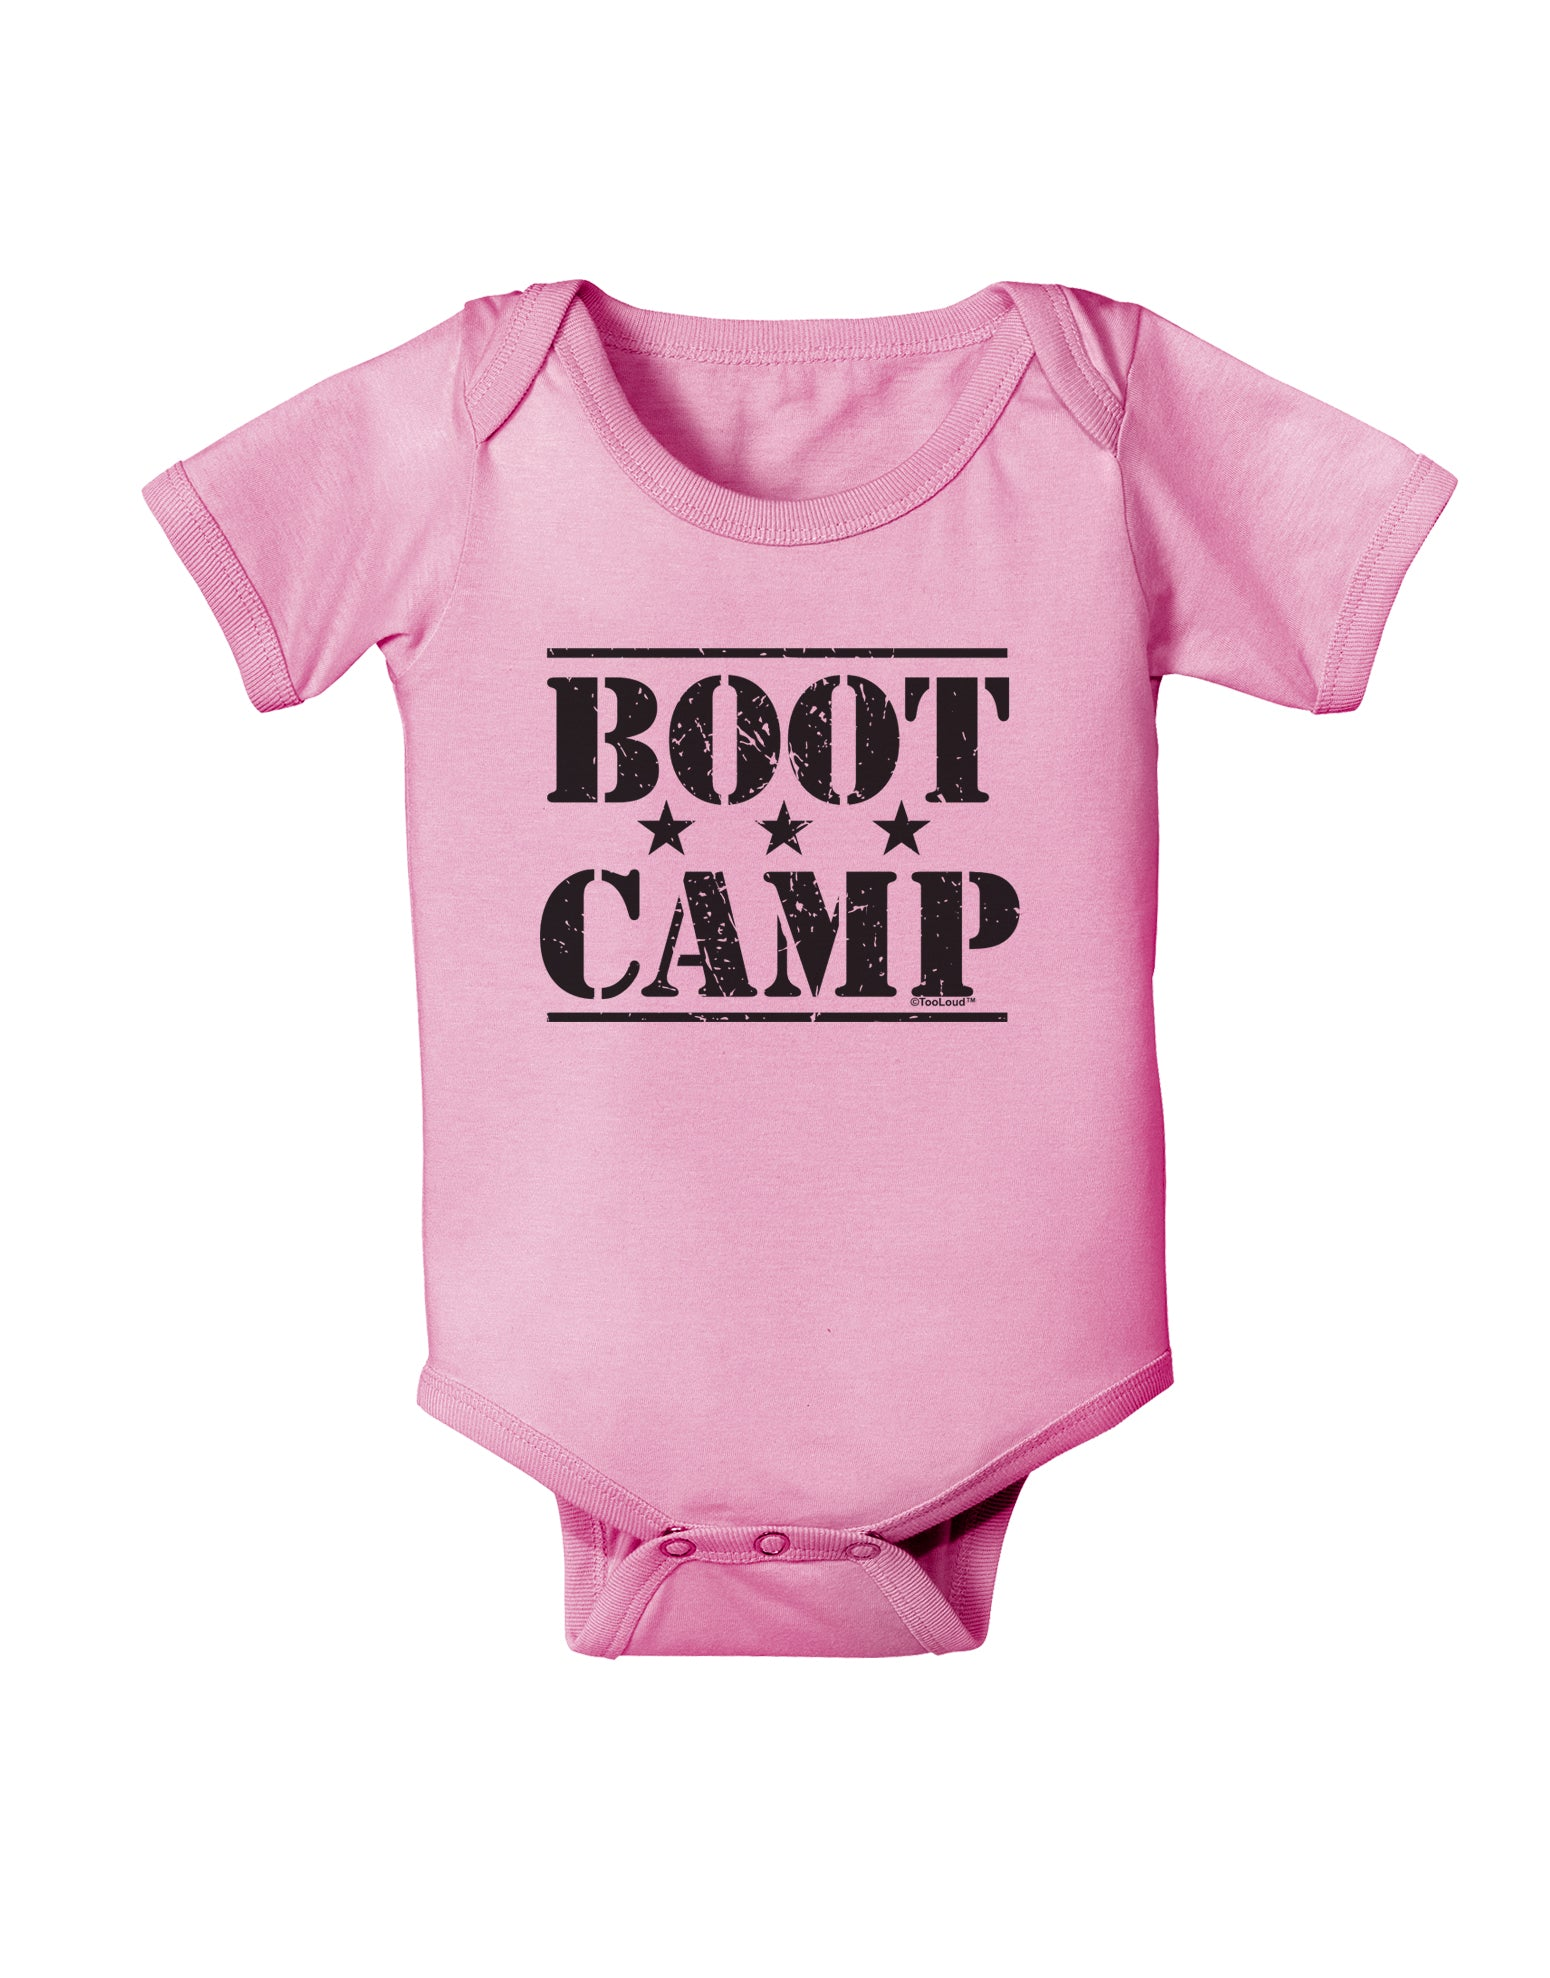 TooLoud Boot Camp Distressed Text Baby Romper Bodysuit